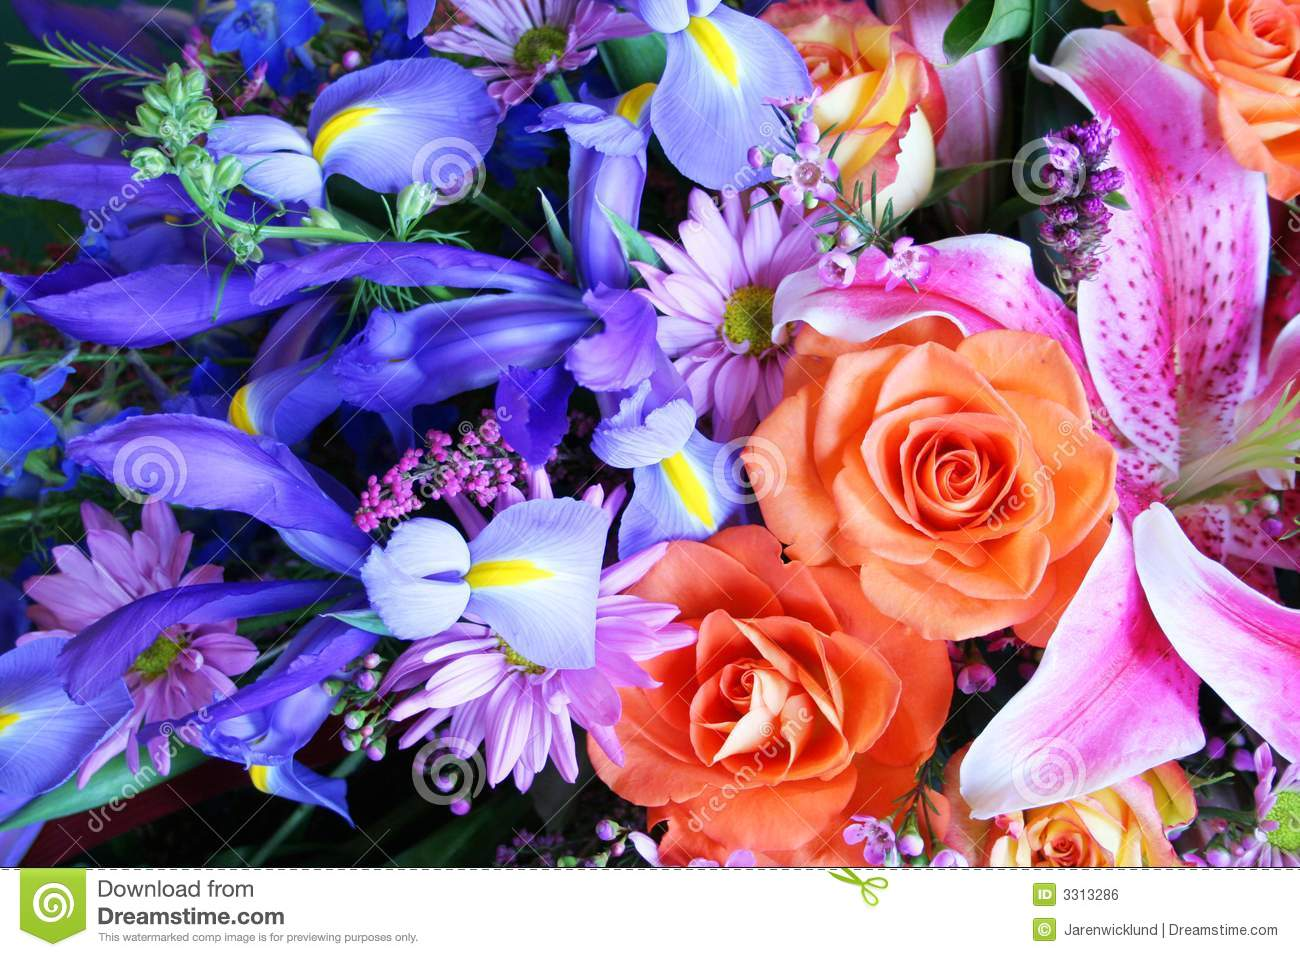 Vibrant bouquet of flowers royalty free stock image for Images of bouquets of roses